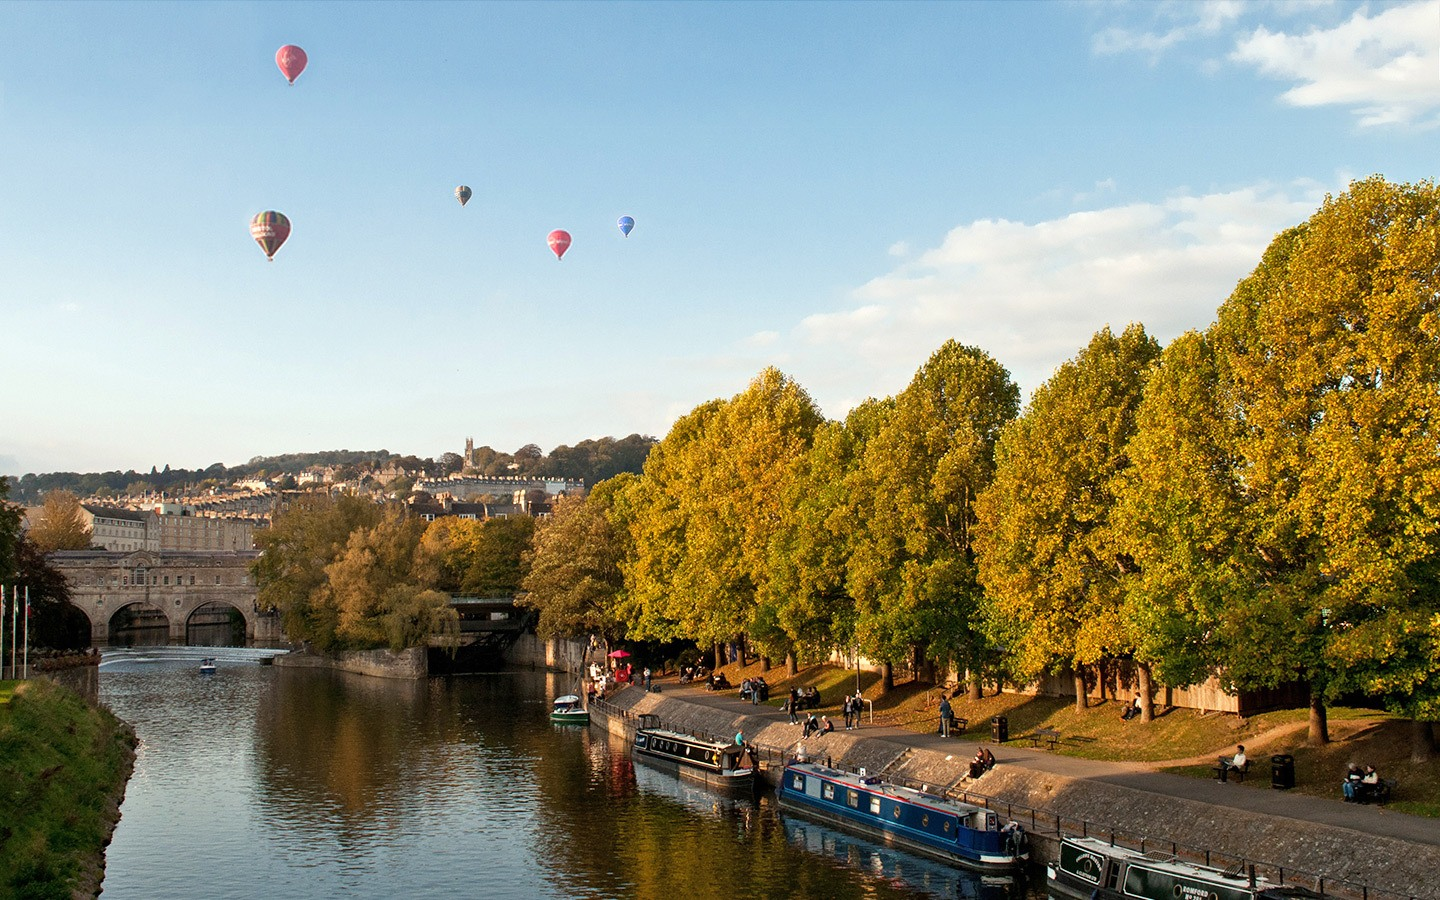 Balloons in the sky over Bath Spa